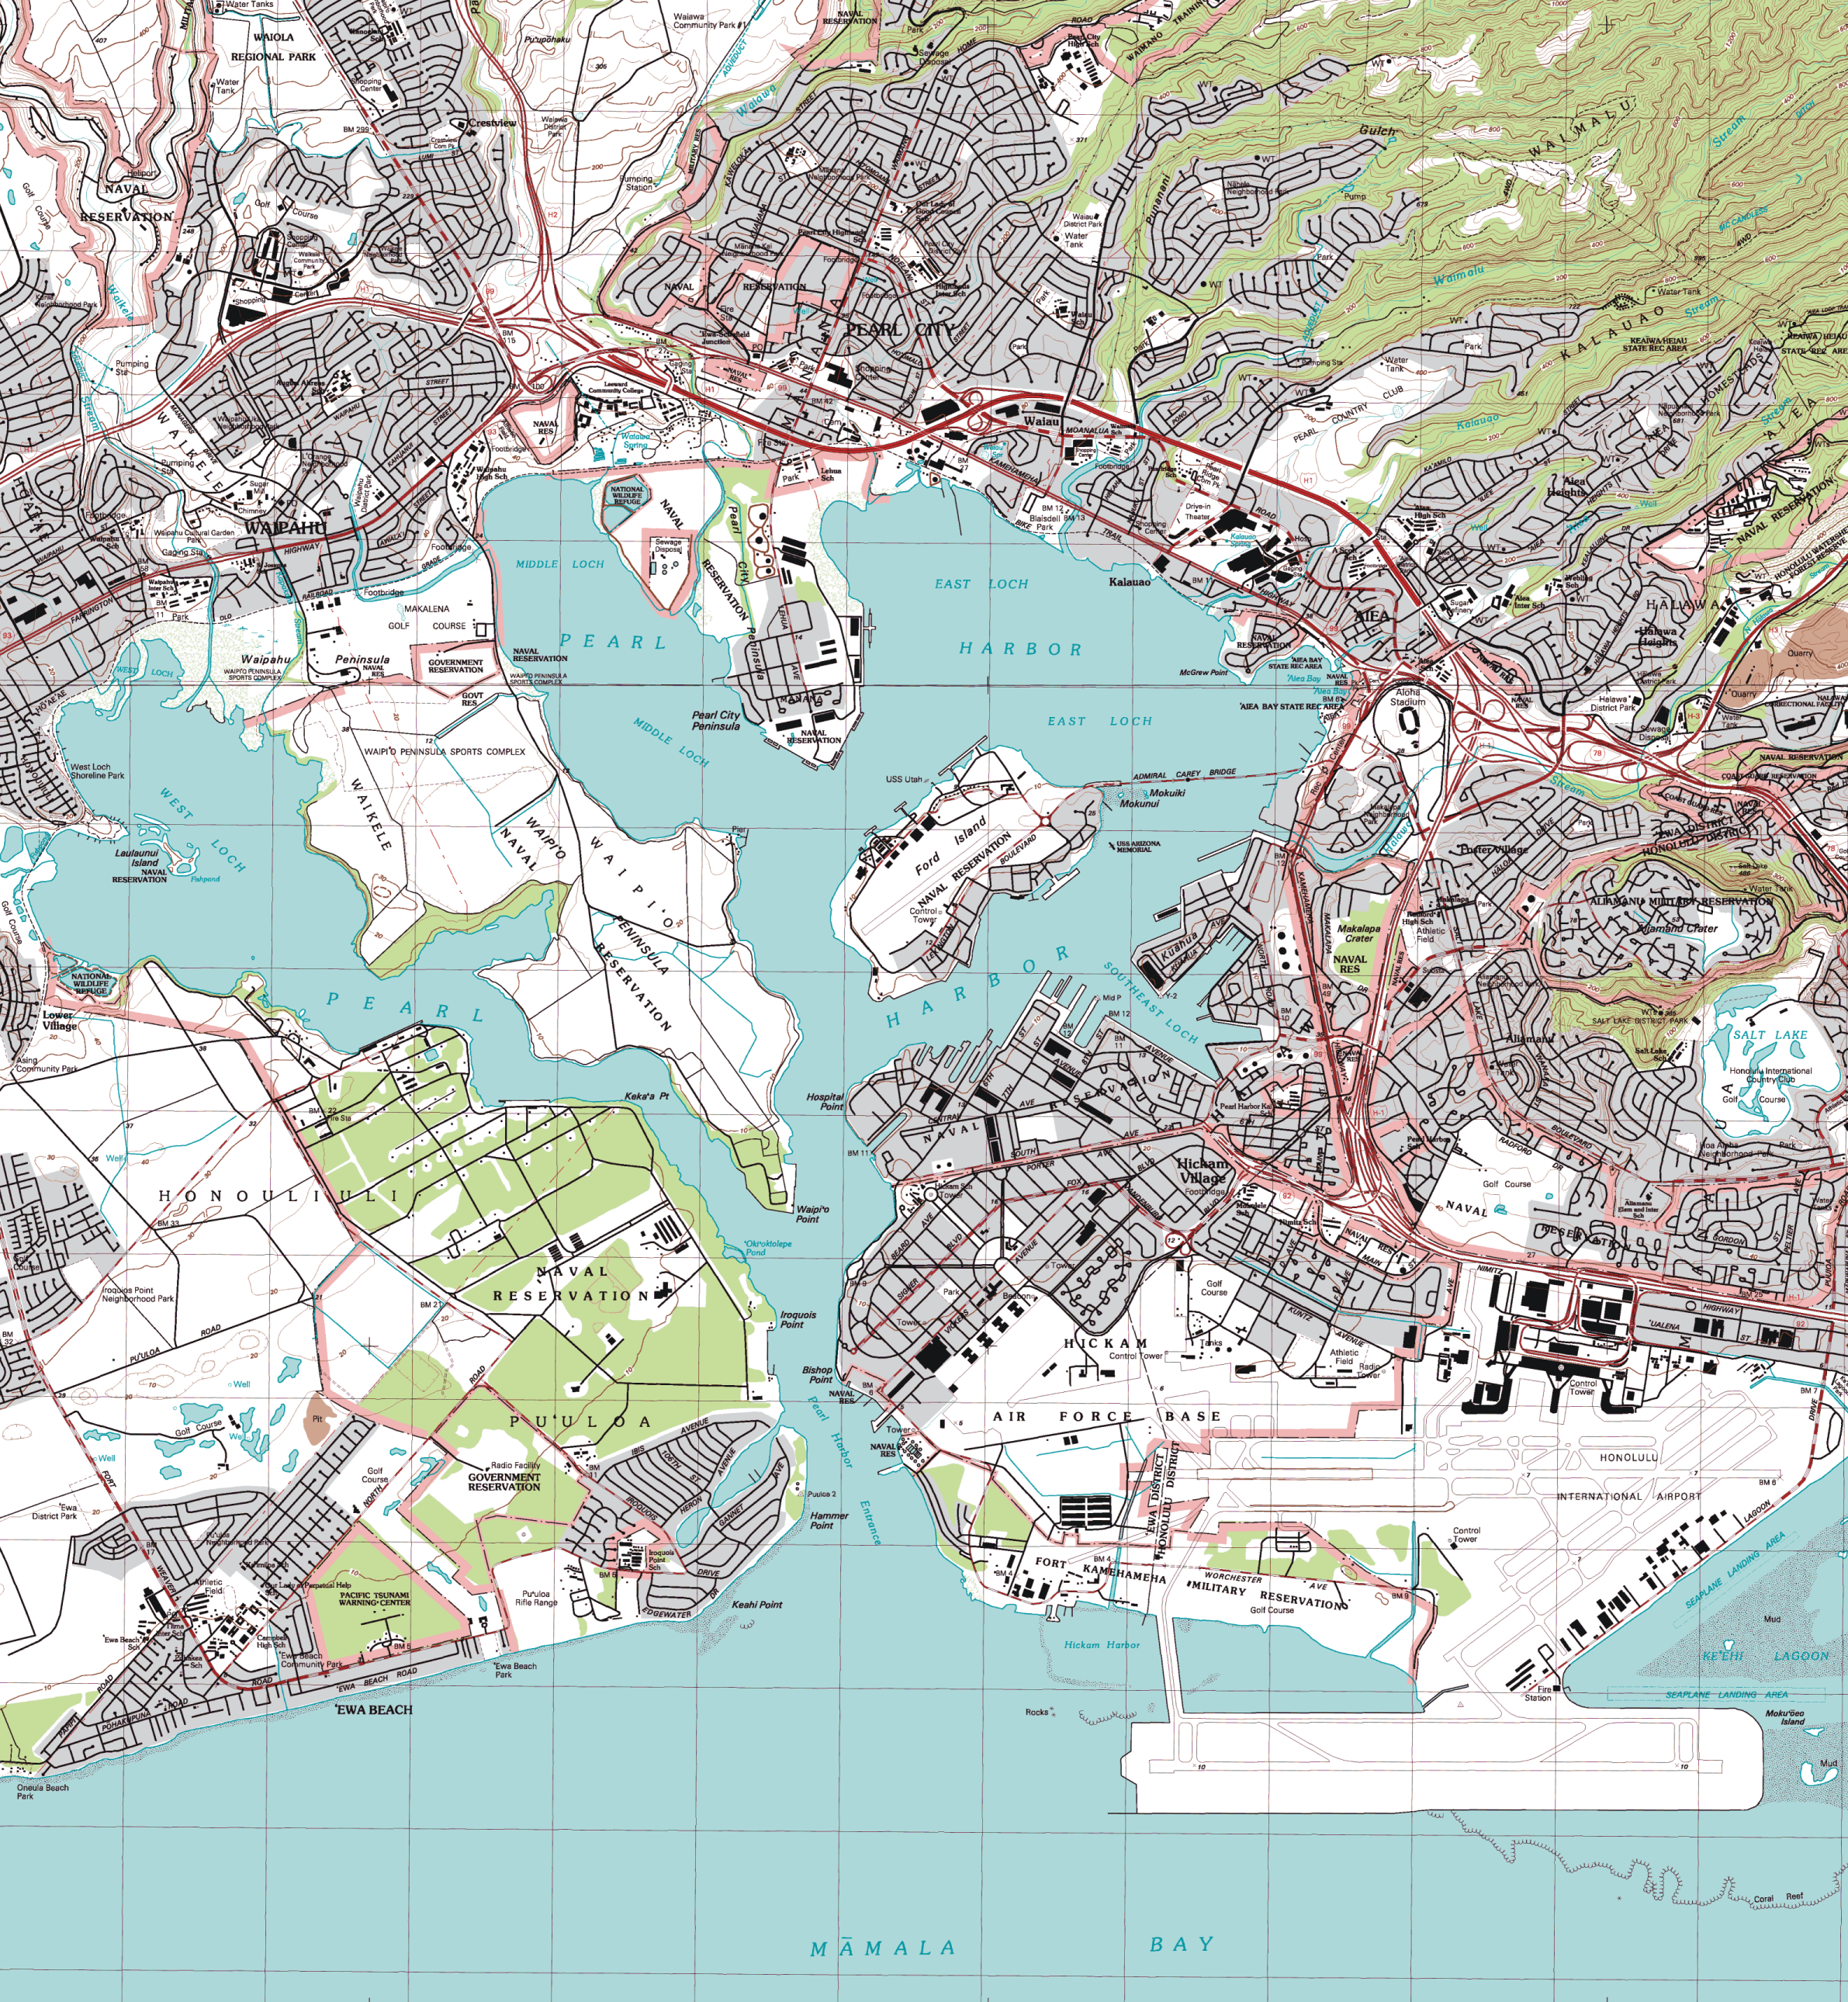 File:Pearl Harbor topographic map.png - Wikimedia Commons on